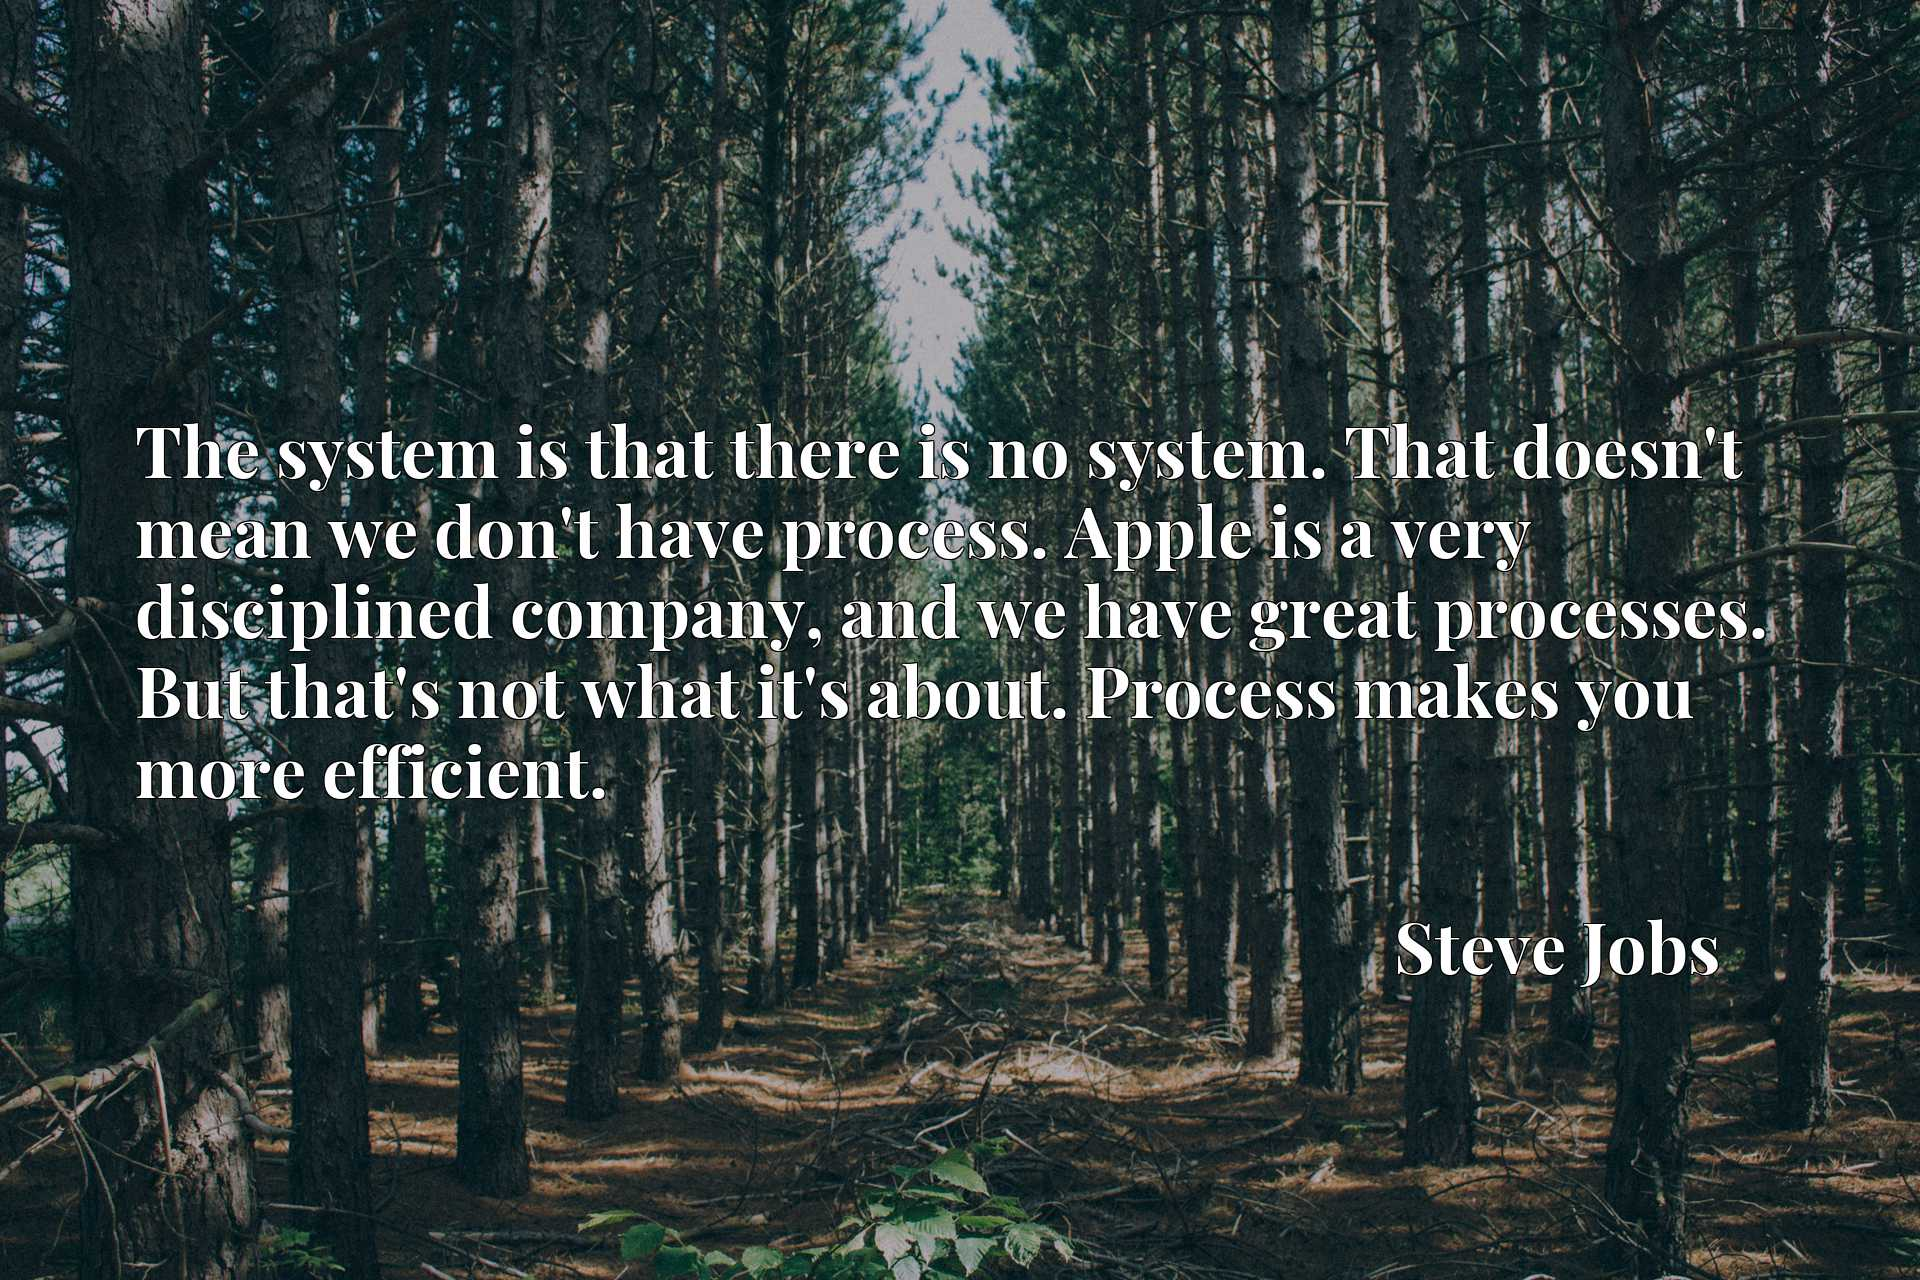 The system is that there is no system. That doesn't mean we don't have process. Apple is a very disciplined company, and we have great processes. But that's not what it's about. Process makes you more efficient.